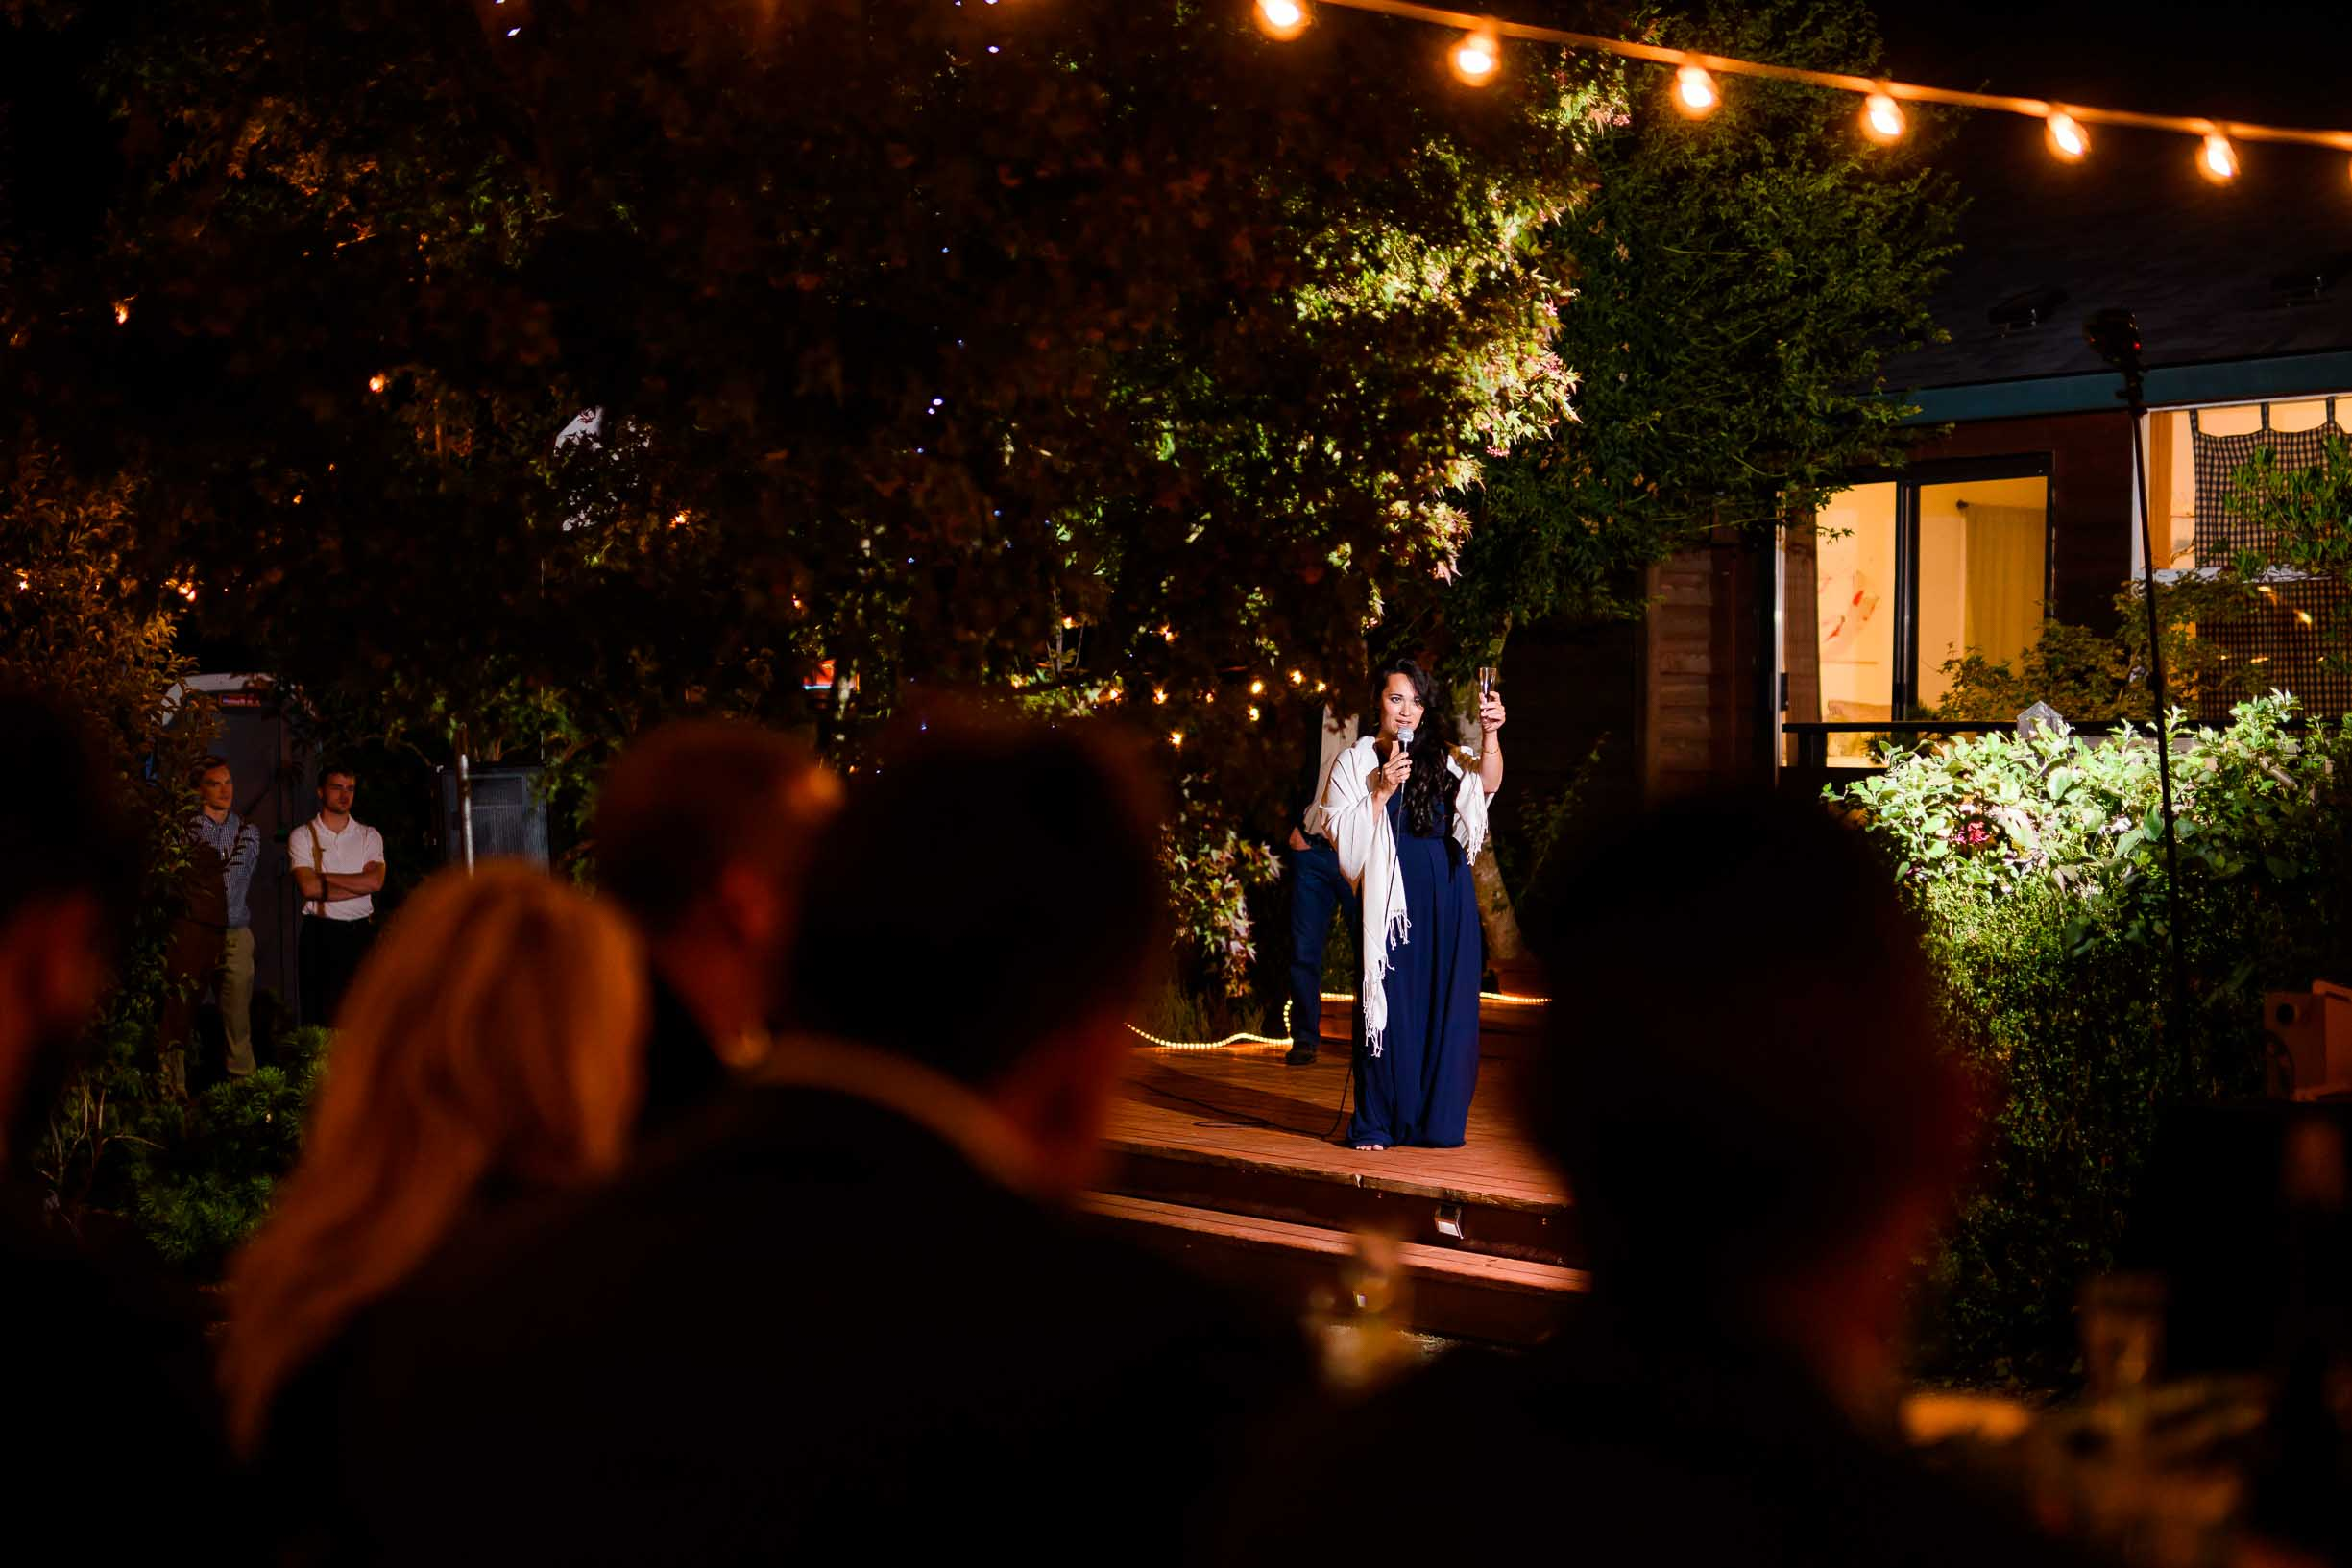 PORTLAND INTAMATE BACKYARD WEDDING 110.jpg